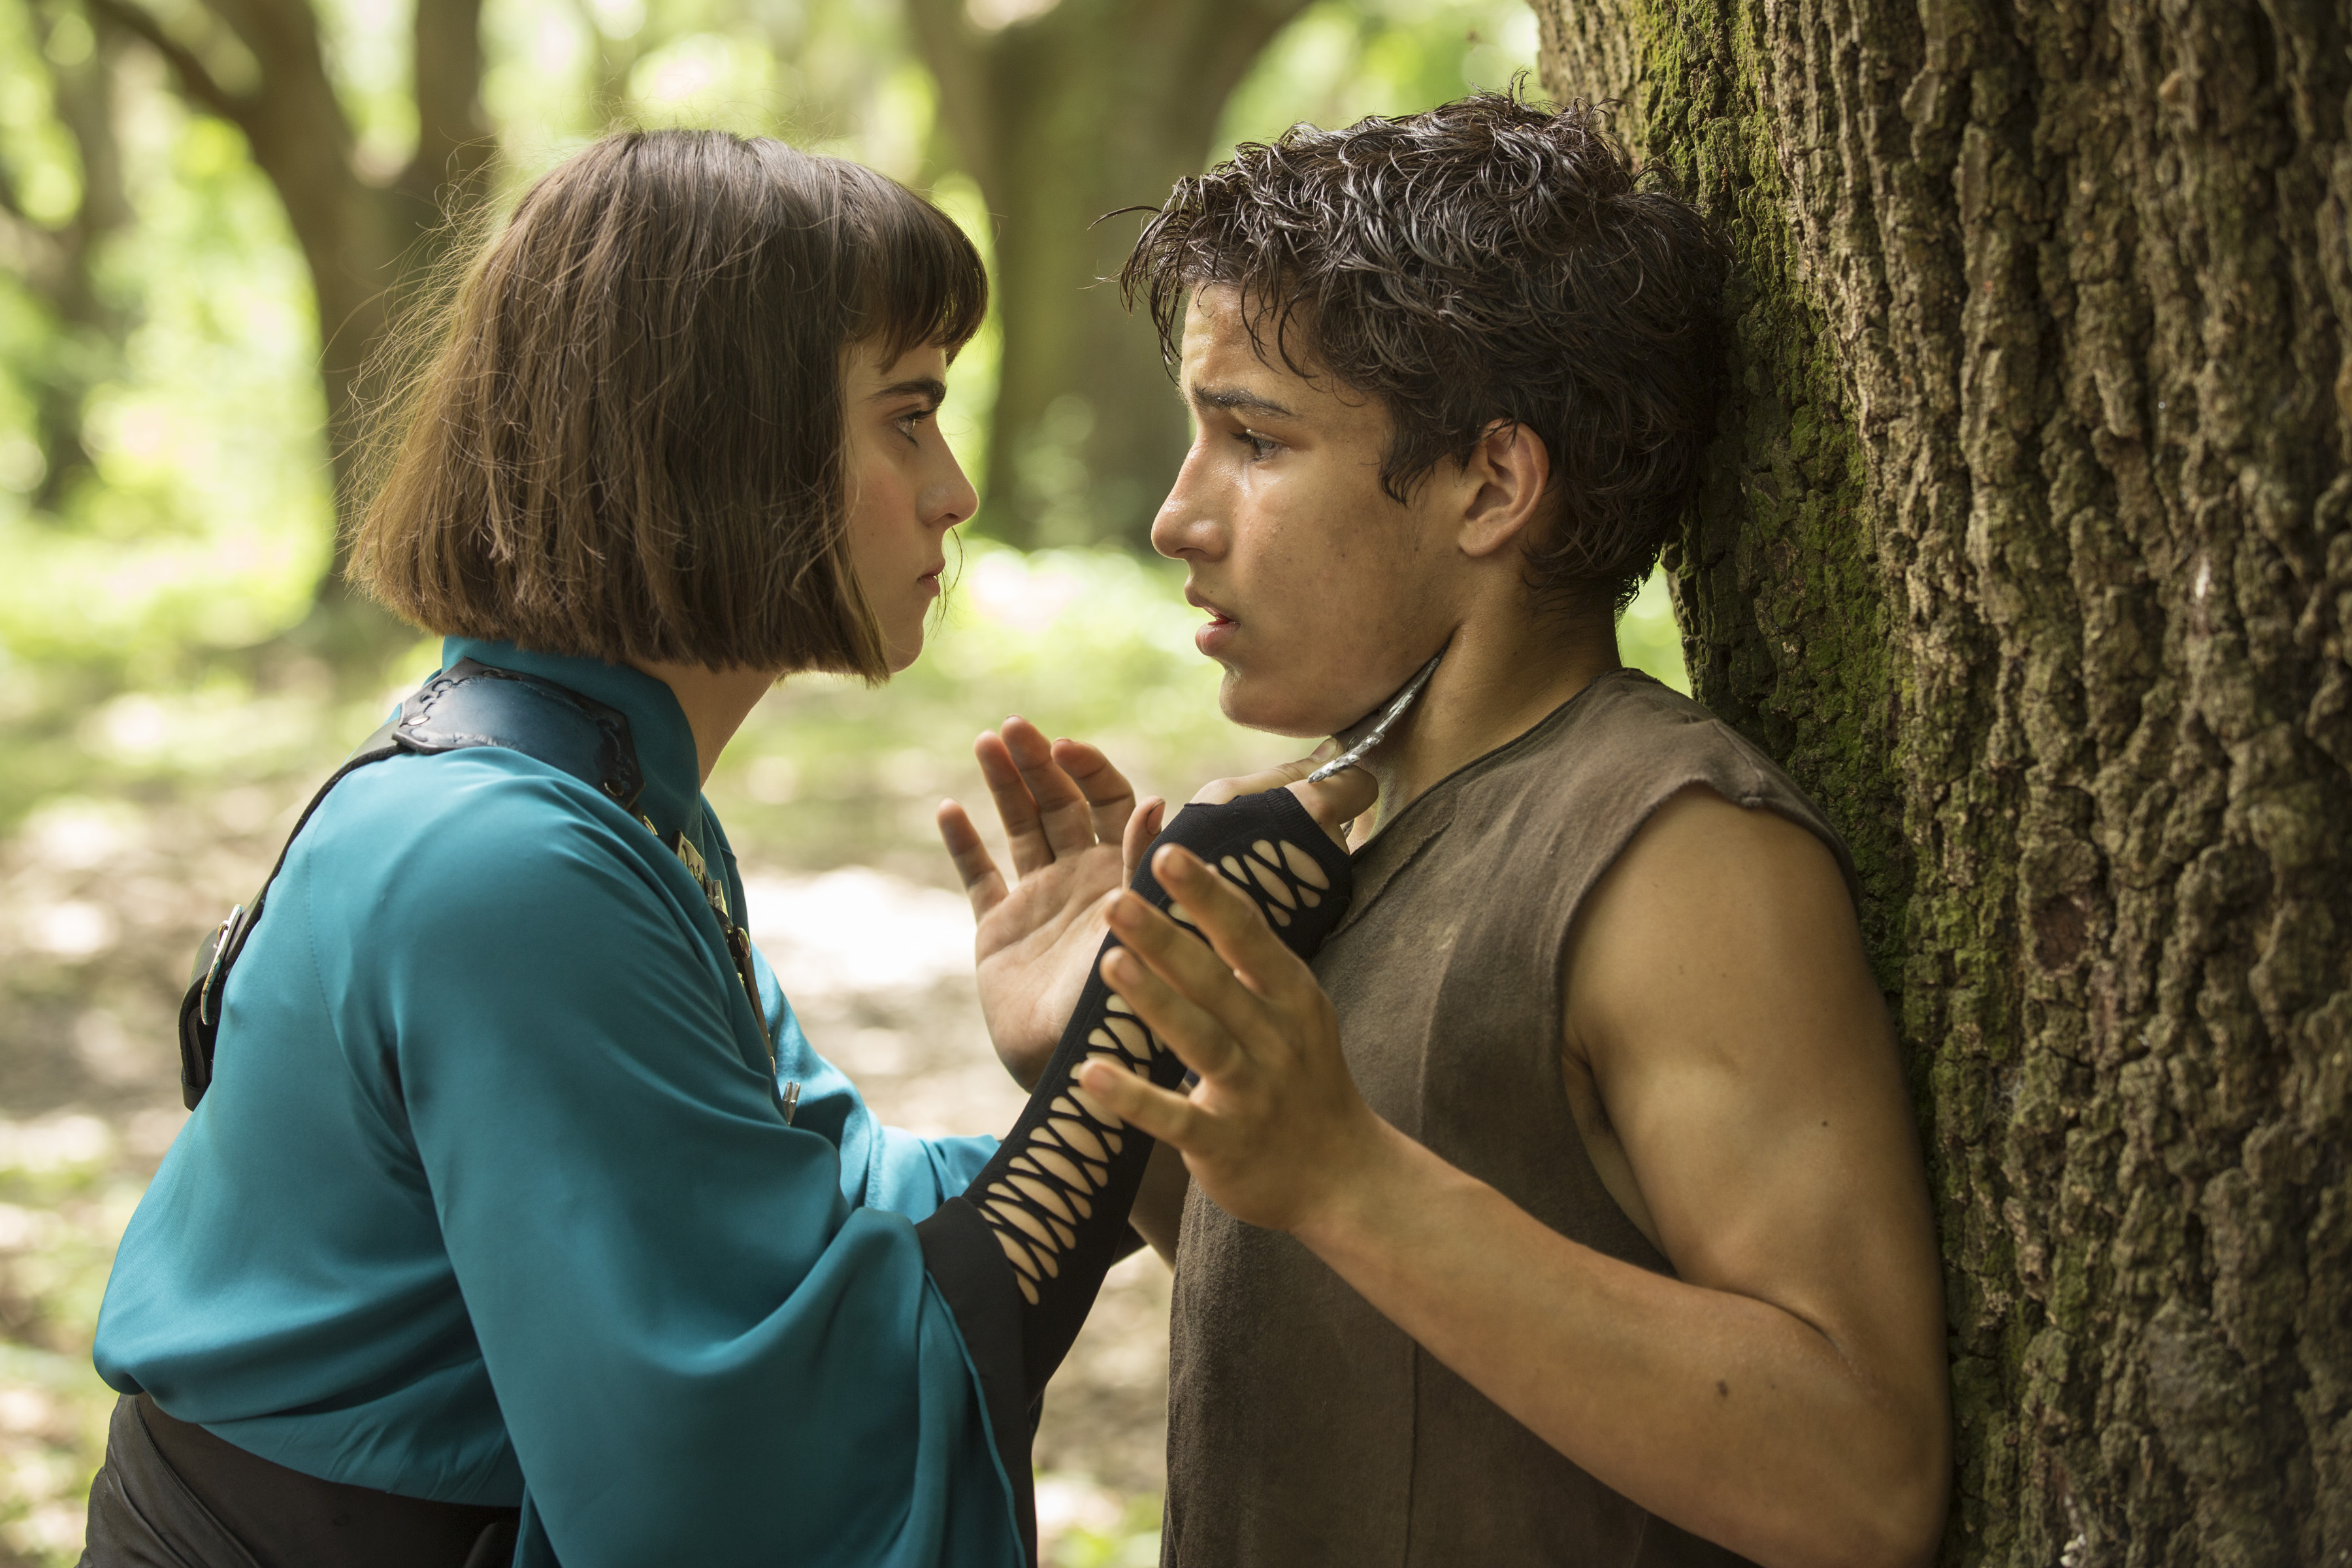 Ally Loannides as Tilda and Aramis Knight as M.K. - Into the Badlands